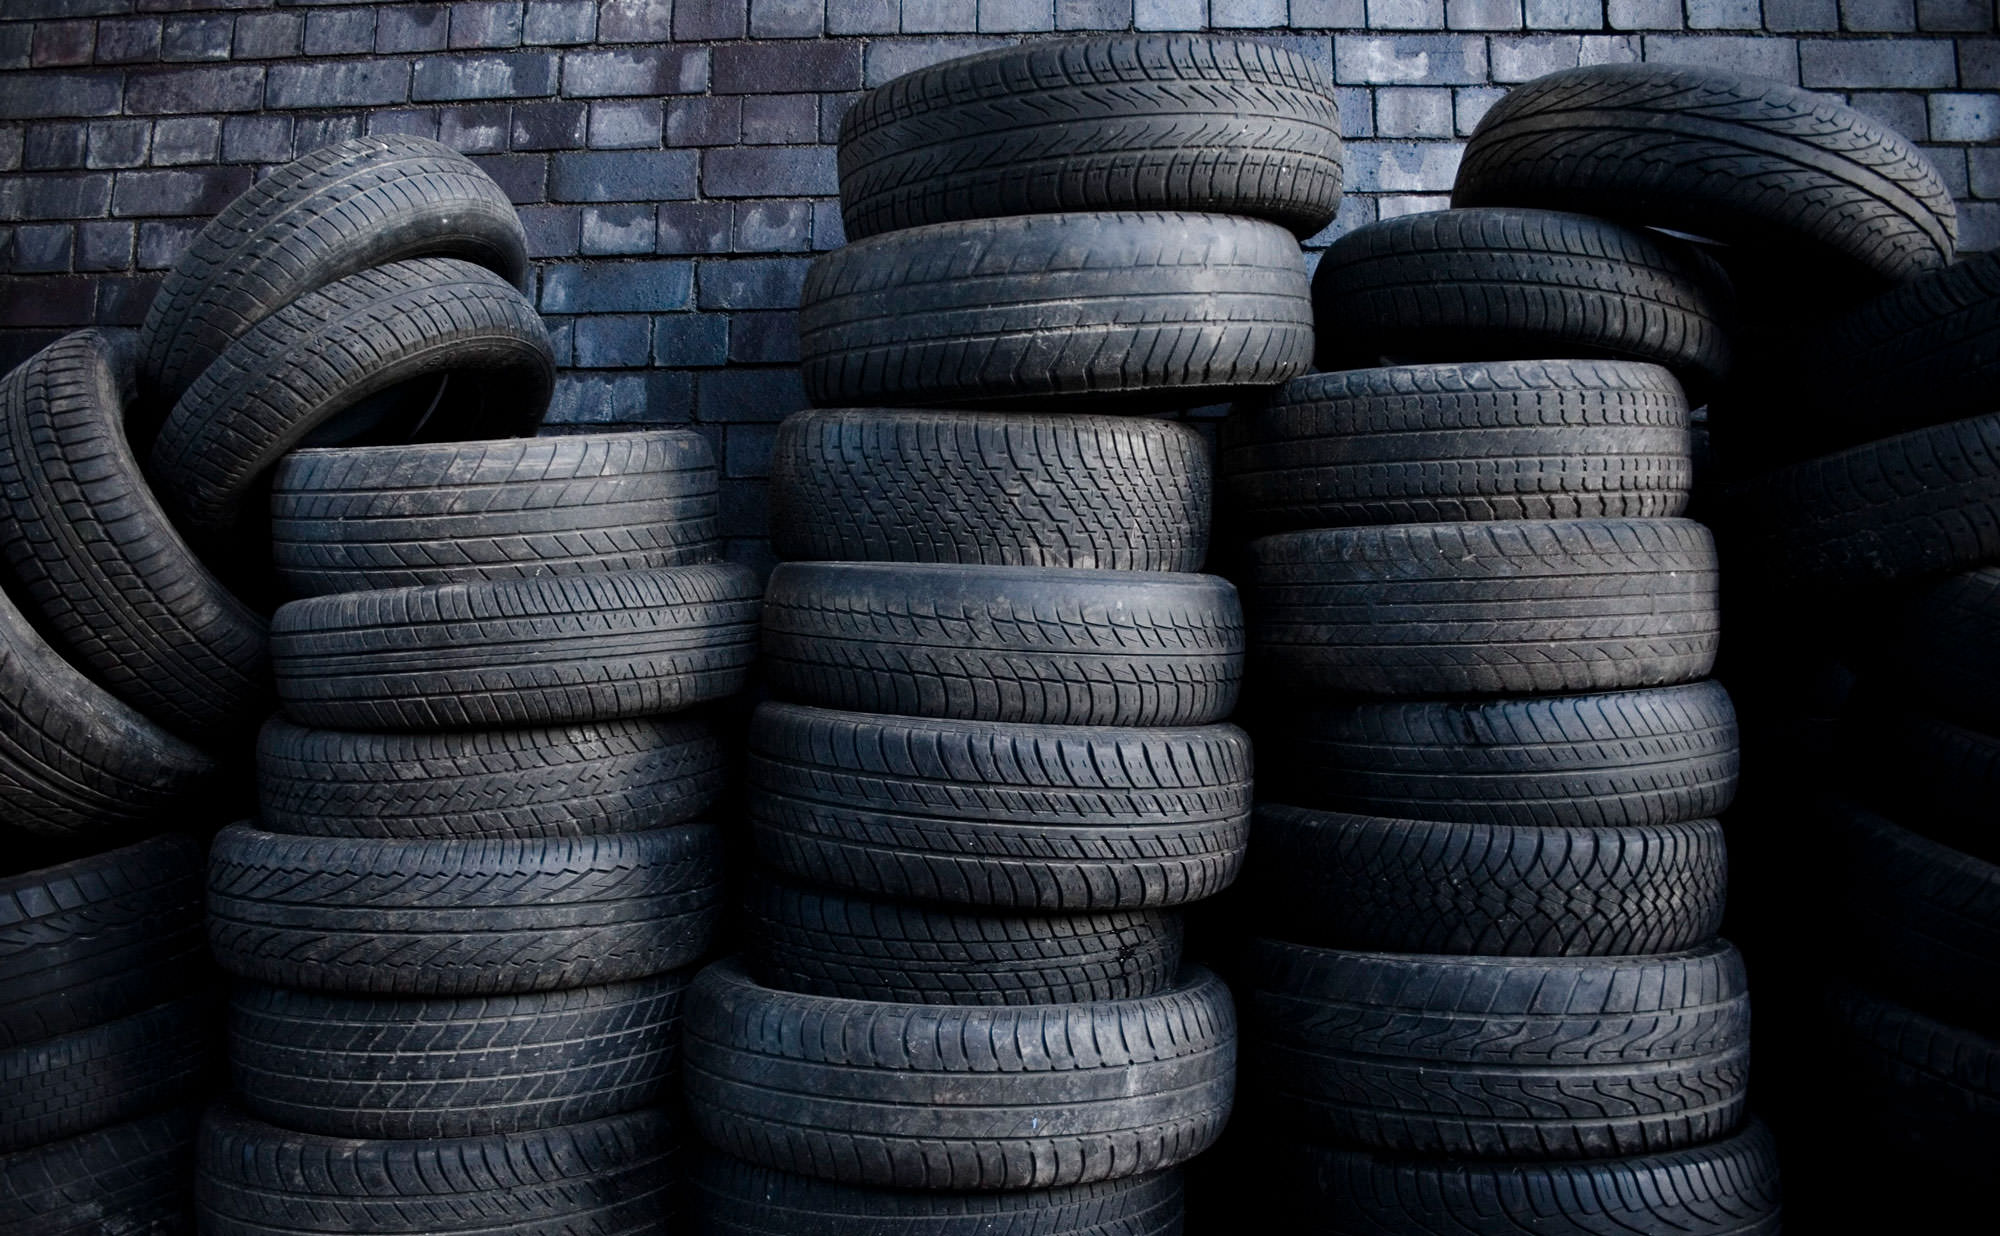 Can You Use Mismatched Tires?